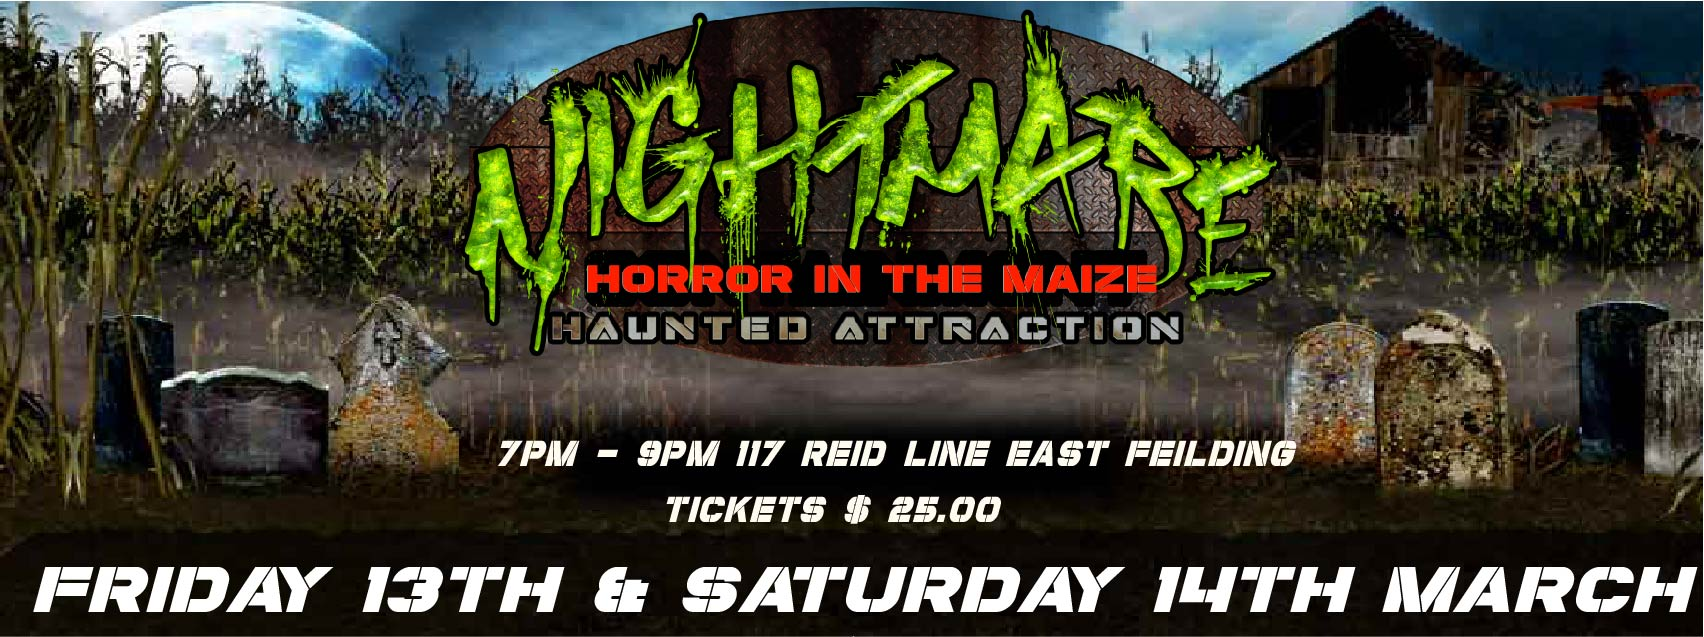 Nightmare Containment Haunted Attraction